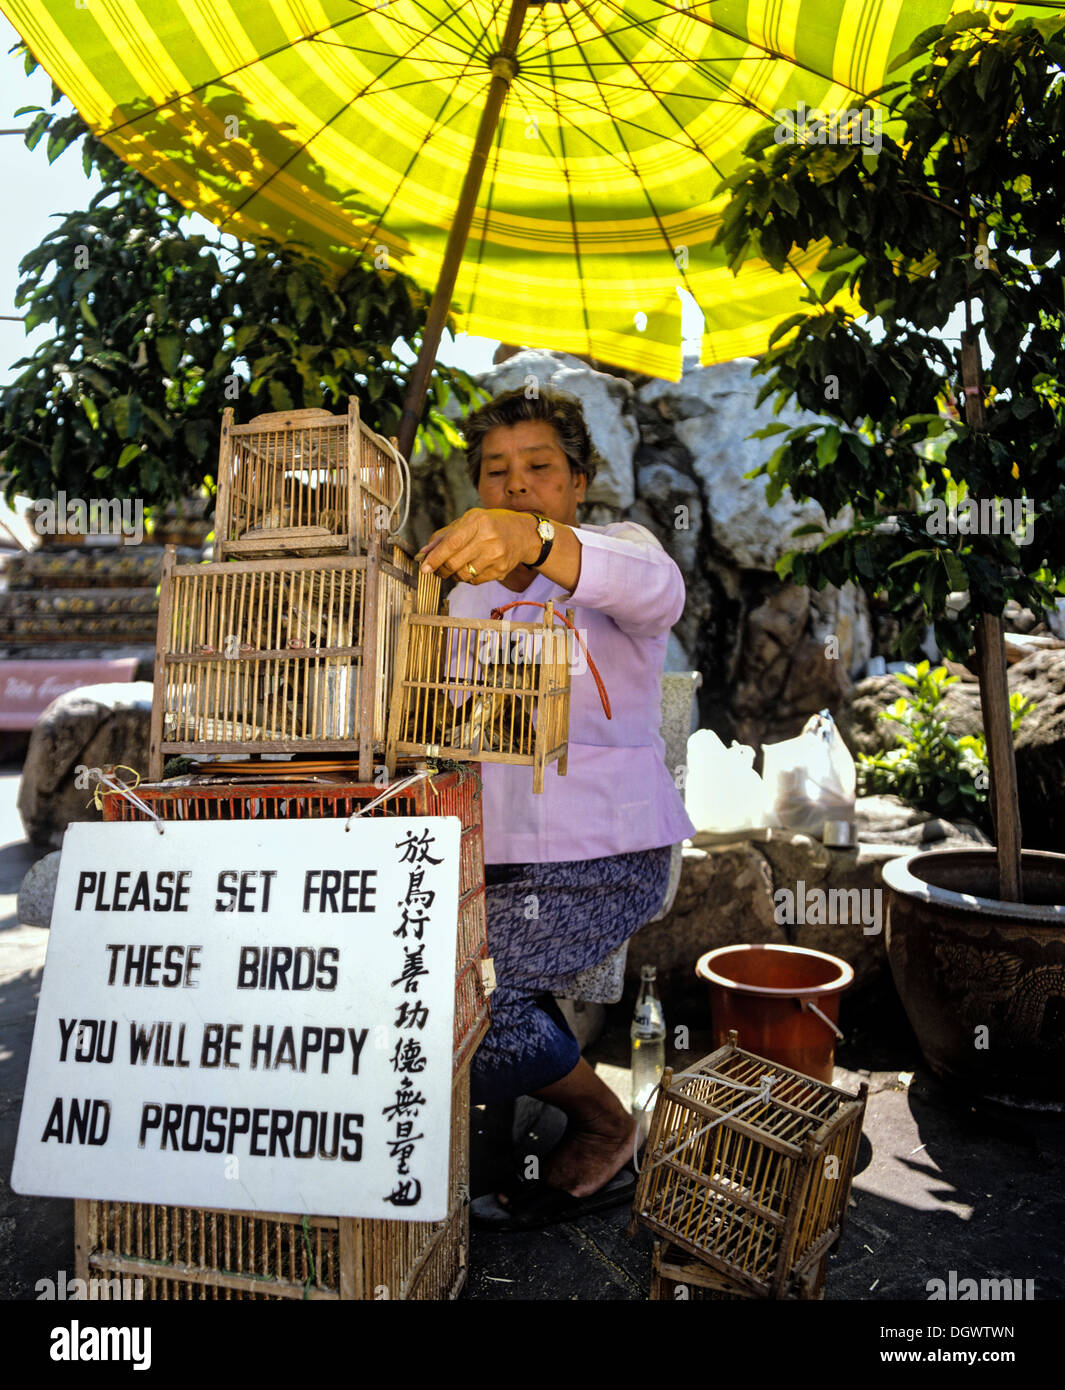 bird saleswoman with bird cages releasing caged birds for good